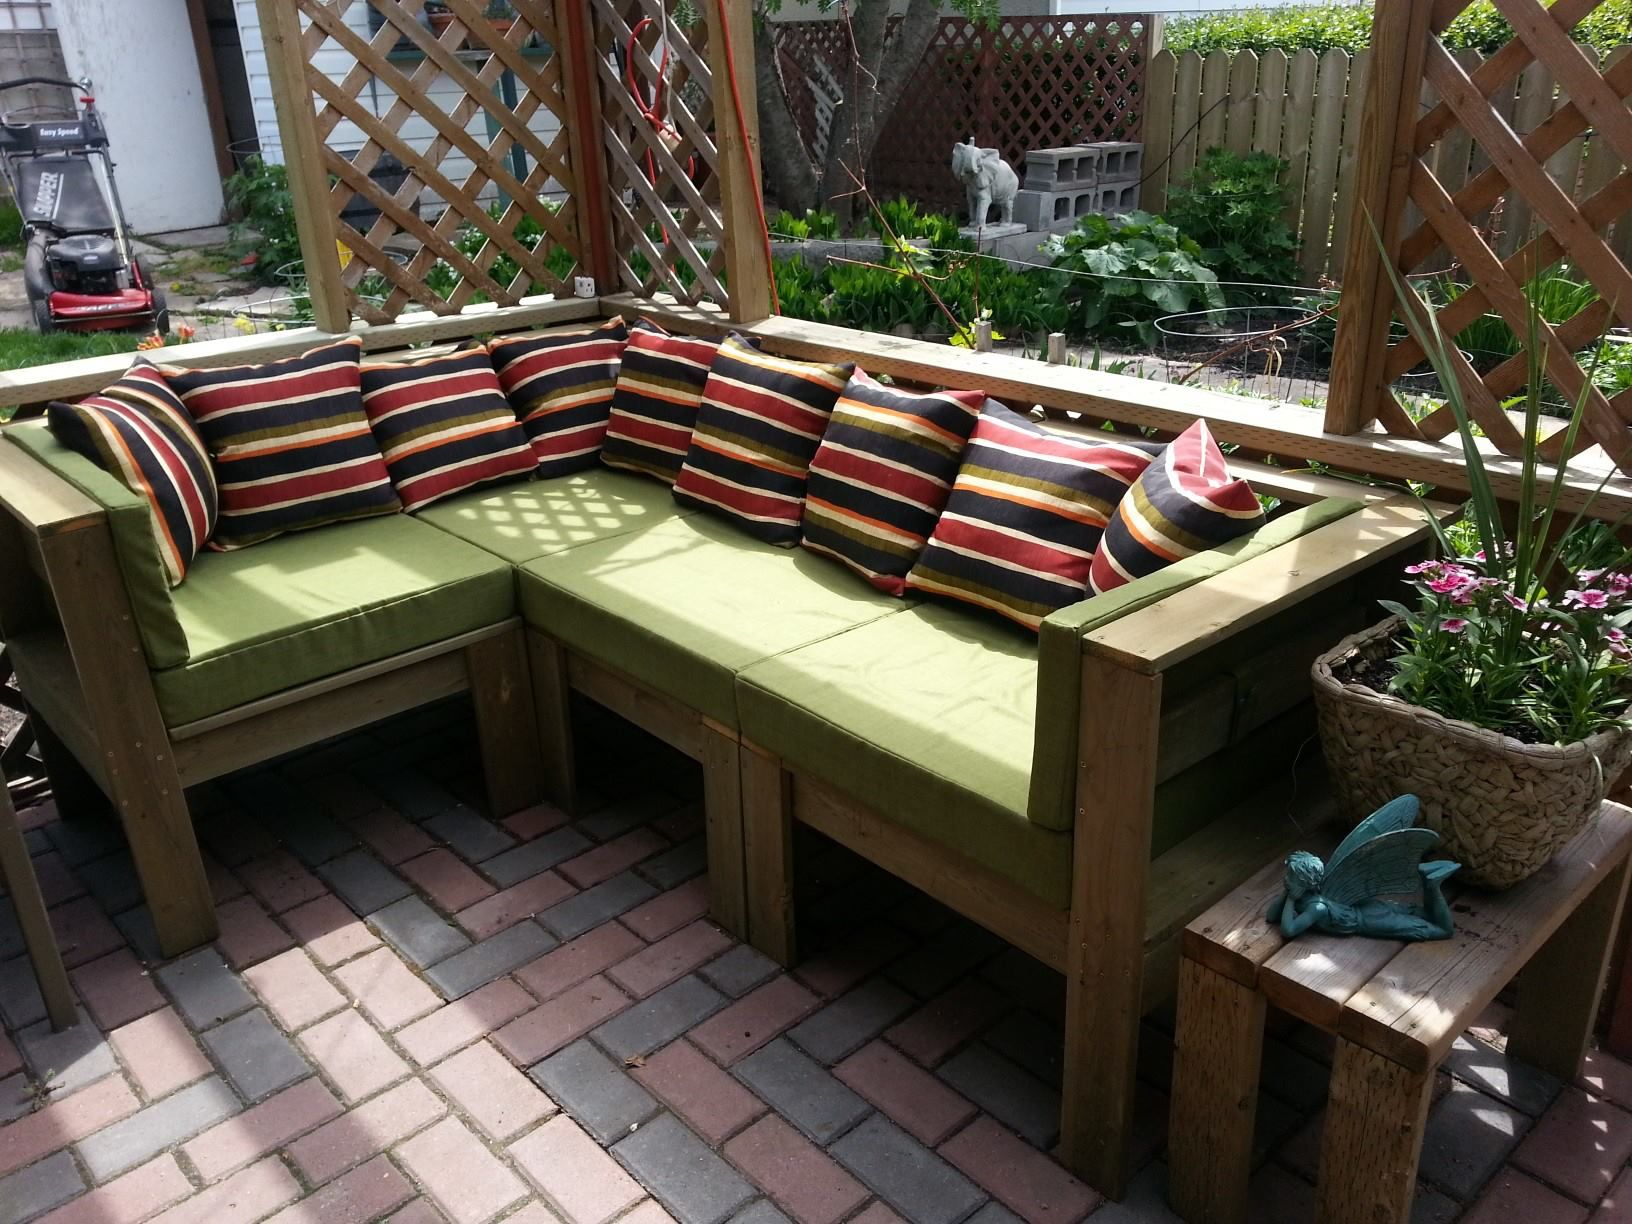 Outdoor sectional do it yourself home projects from ana white outdoor sectional diy projects solutioingenieria Image collections